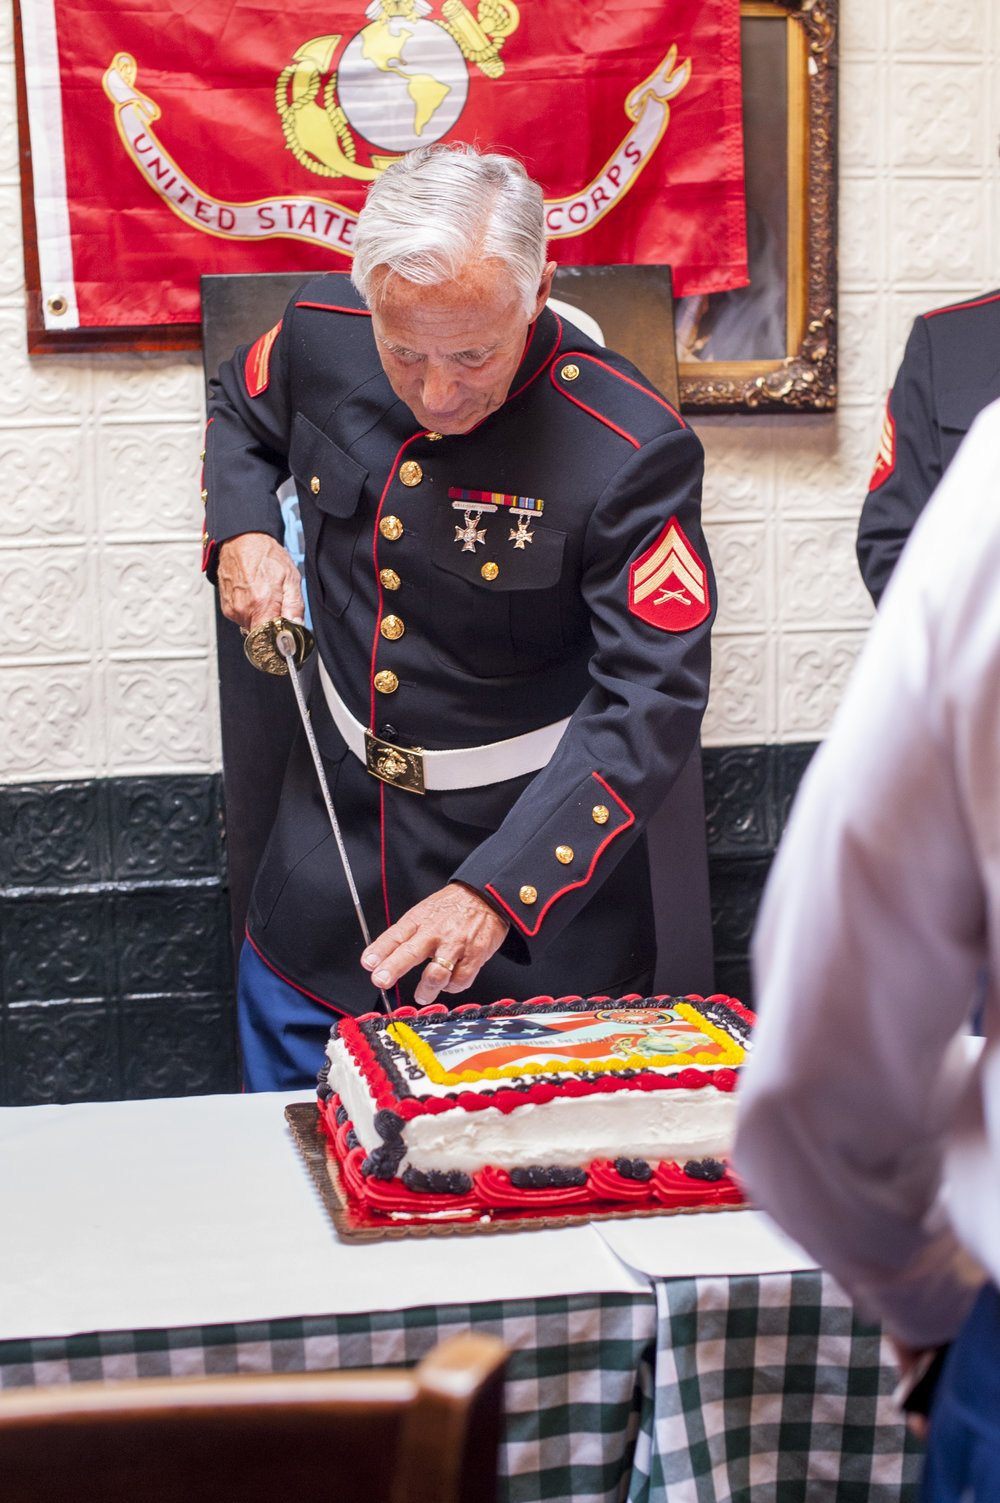 William Ober, past commandant of the Marine Corps League of Huntington, cuts the cake halfway to pass on to the sword to the youngest member.